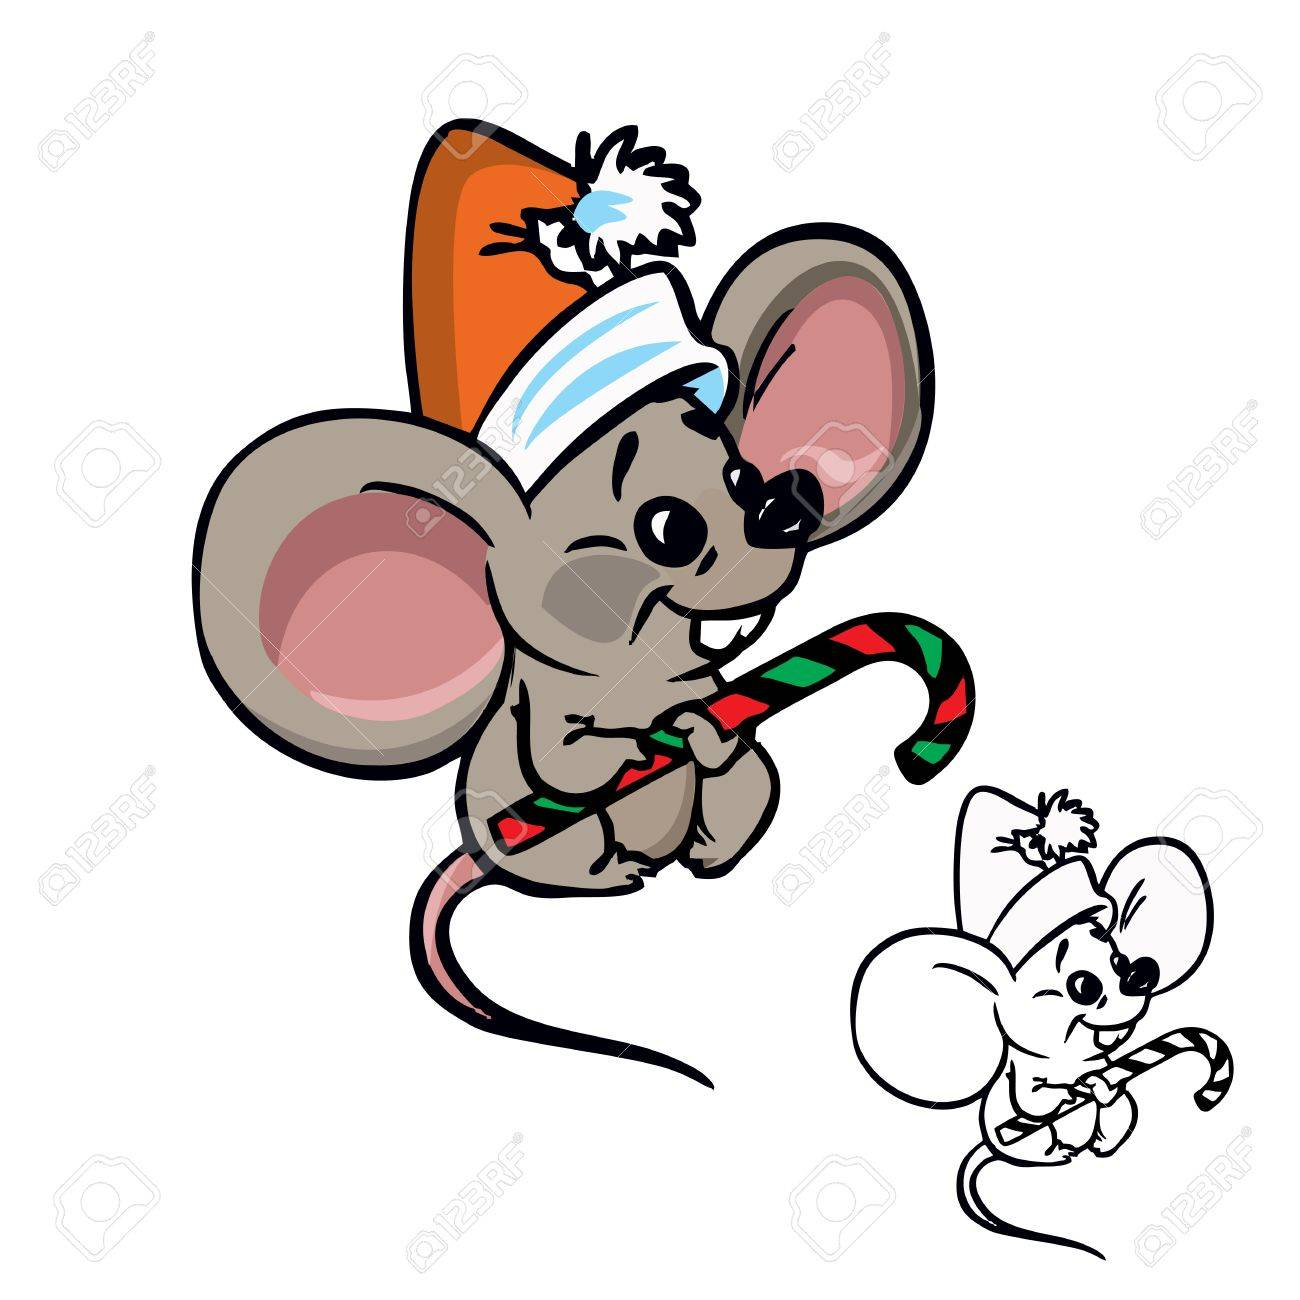 Christmas Mouse.Illustration Of Cute Christmas Mouse With Candy